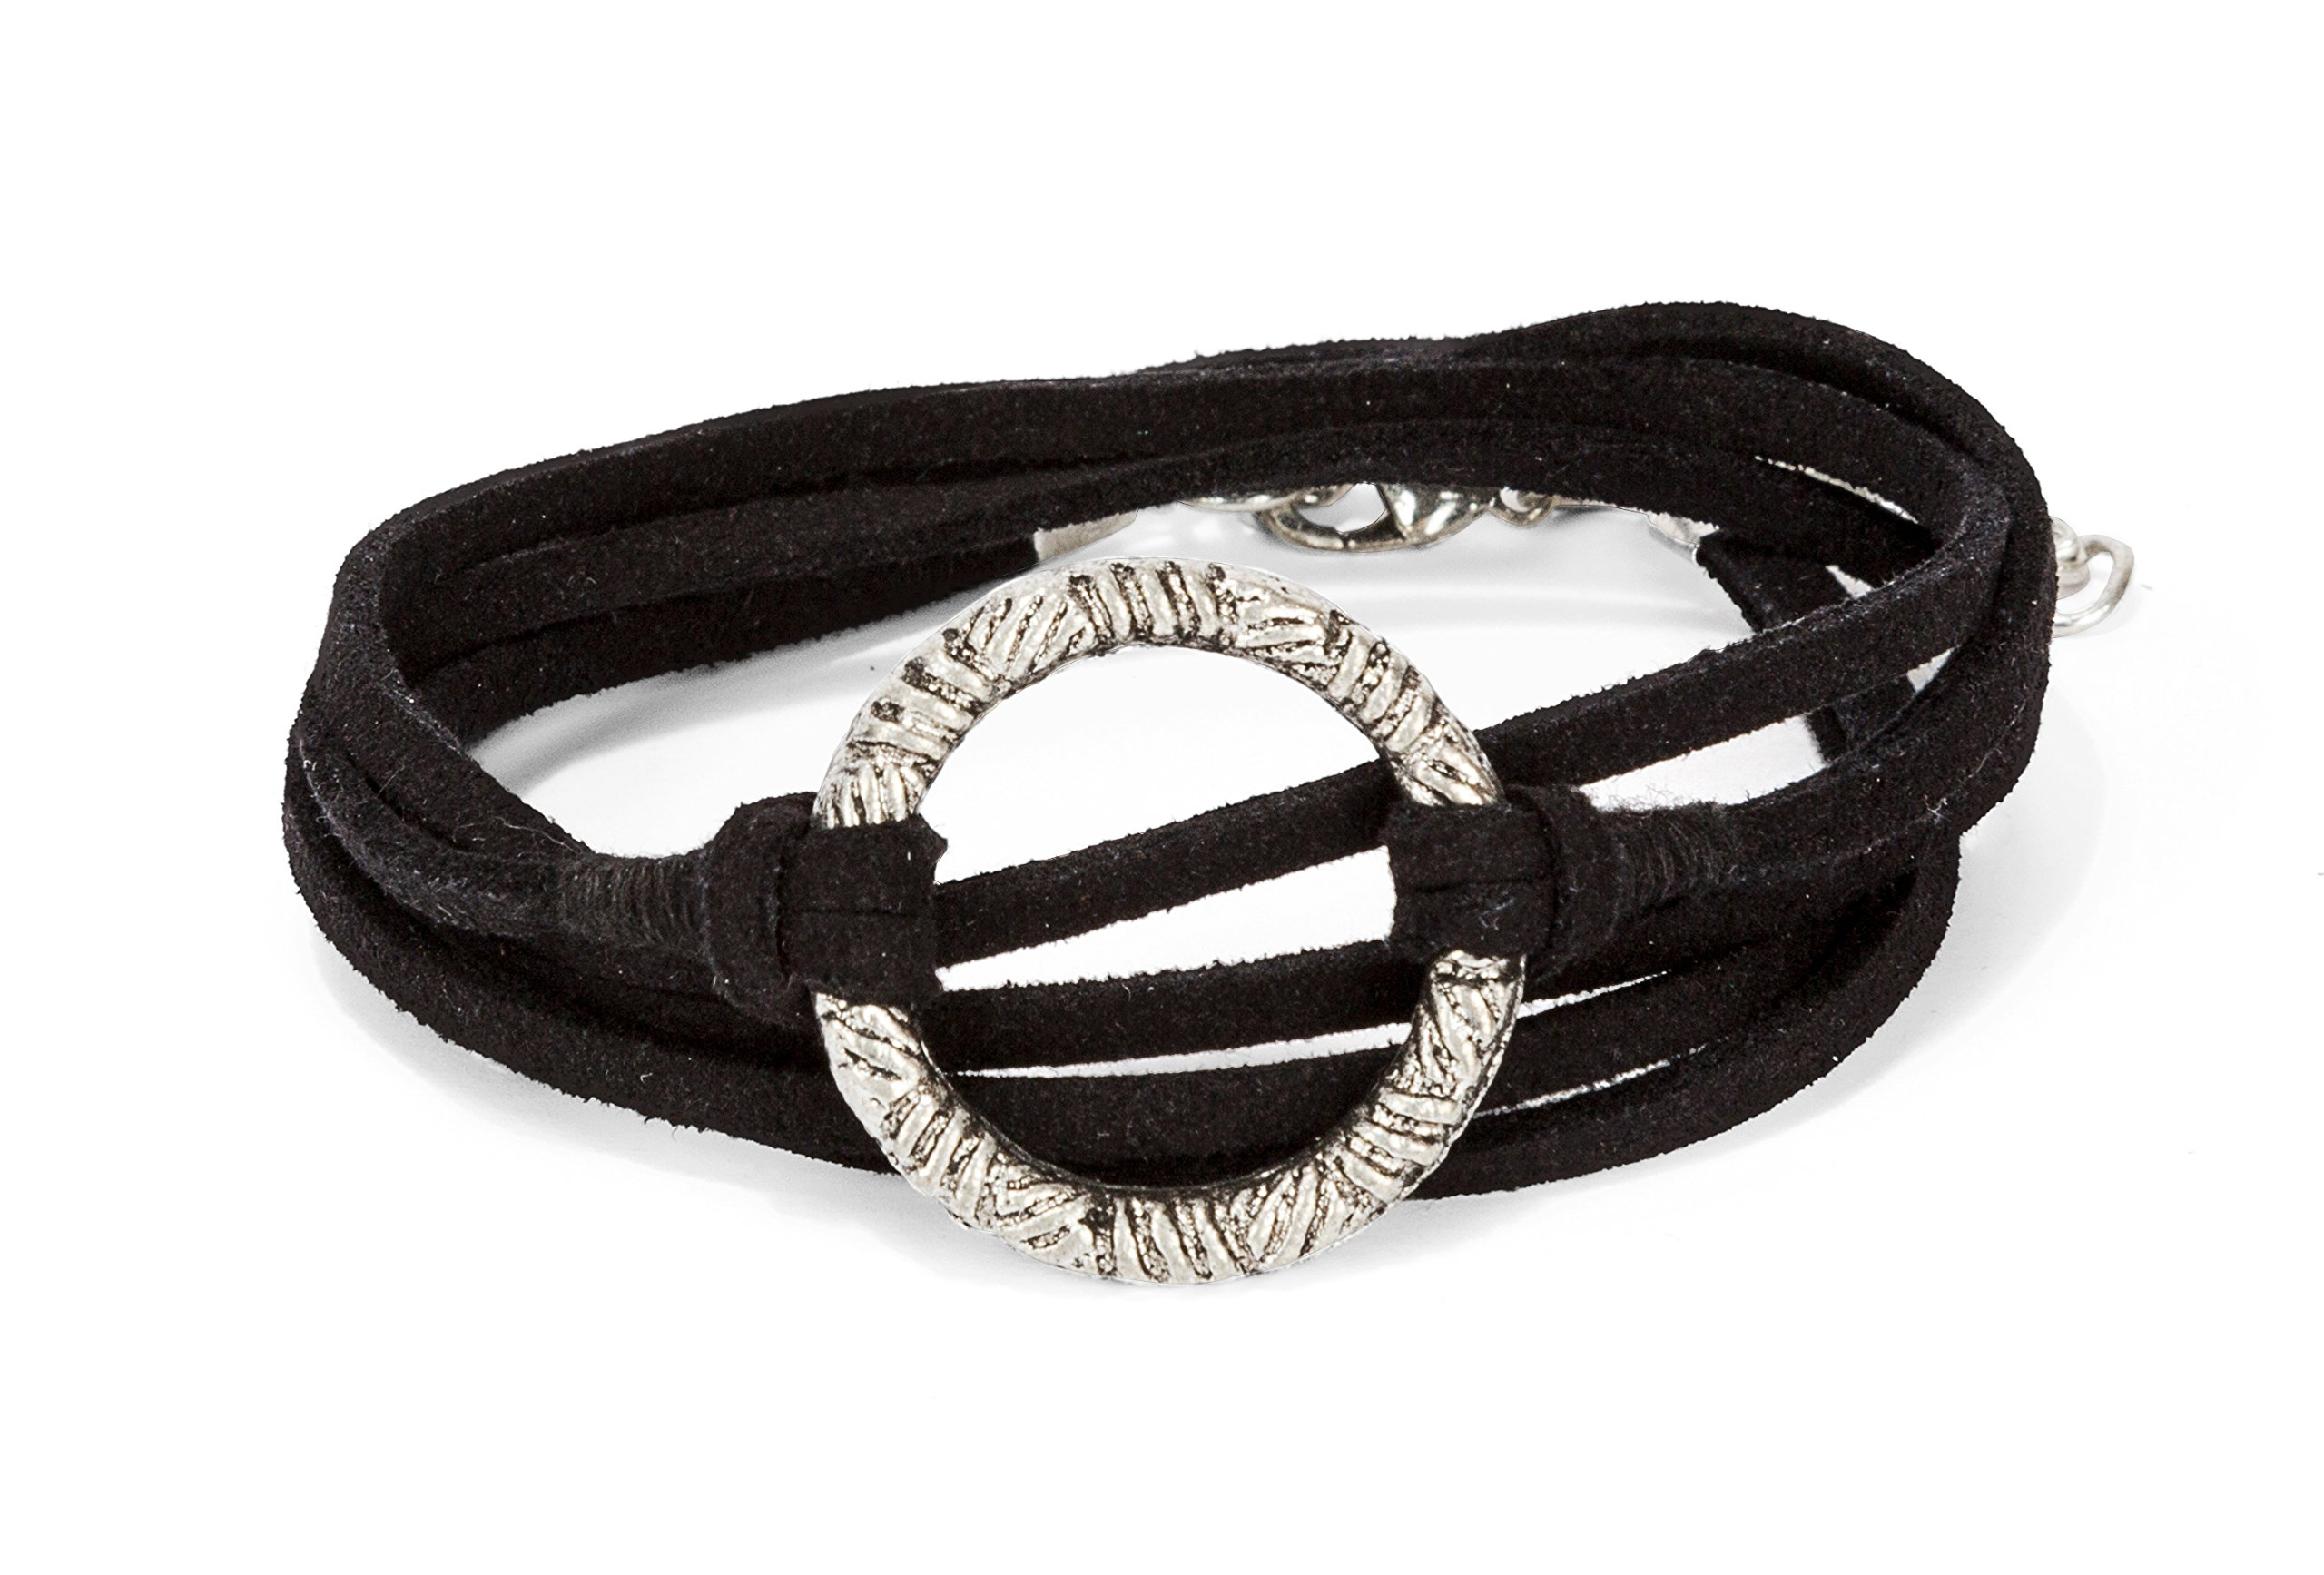 New! Handmade 3 Wrap Silver Circle Black Suede Leather Bracelet with Adjustment Chain | SPUNKYsoul Collection